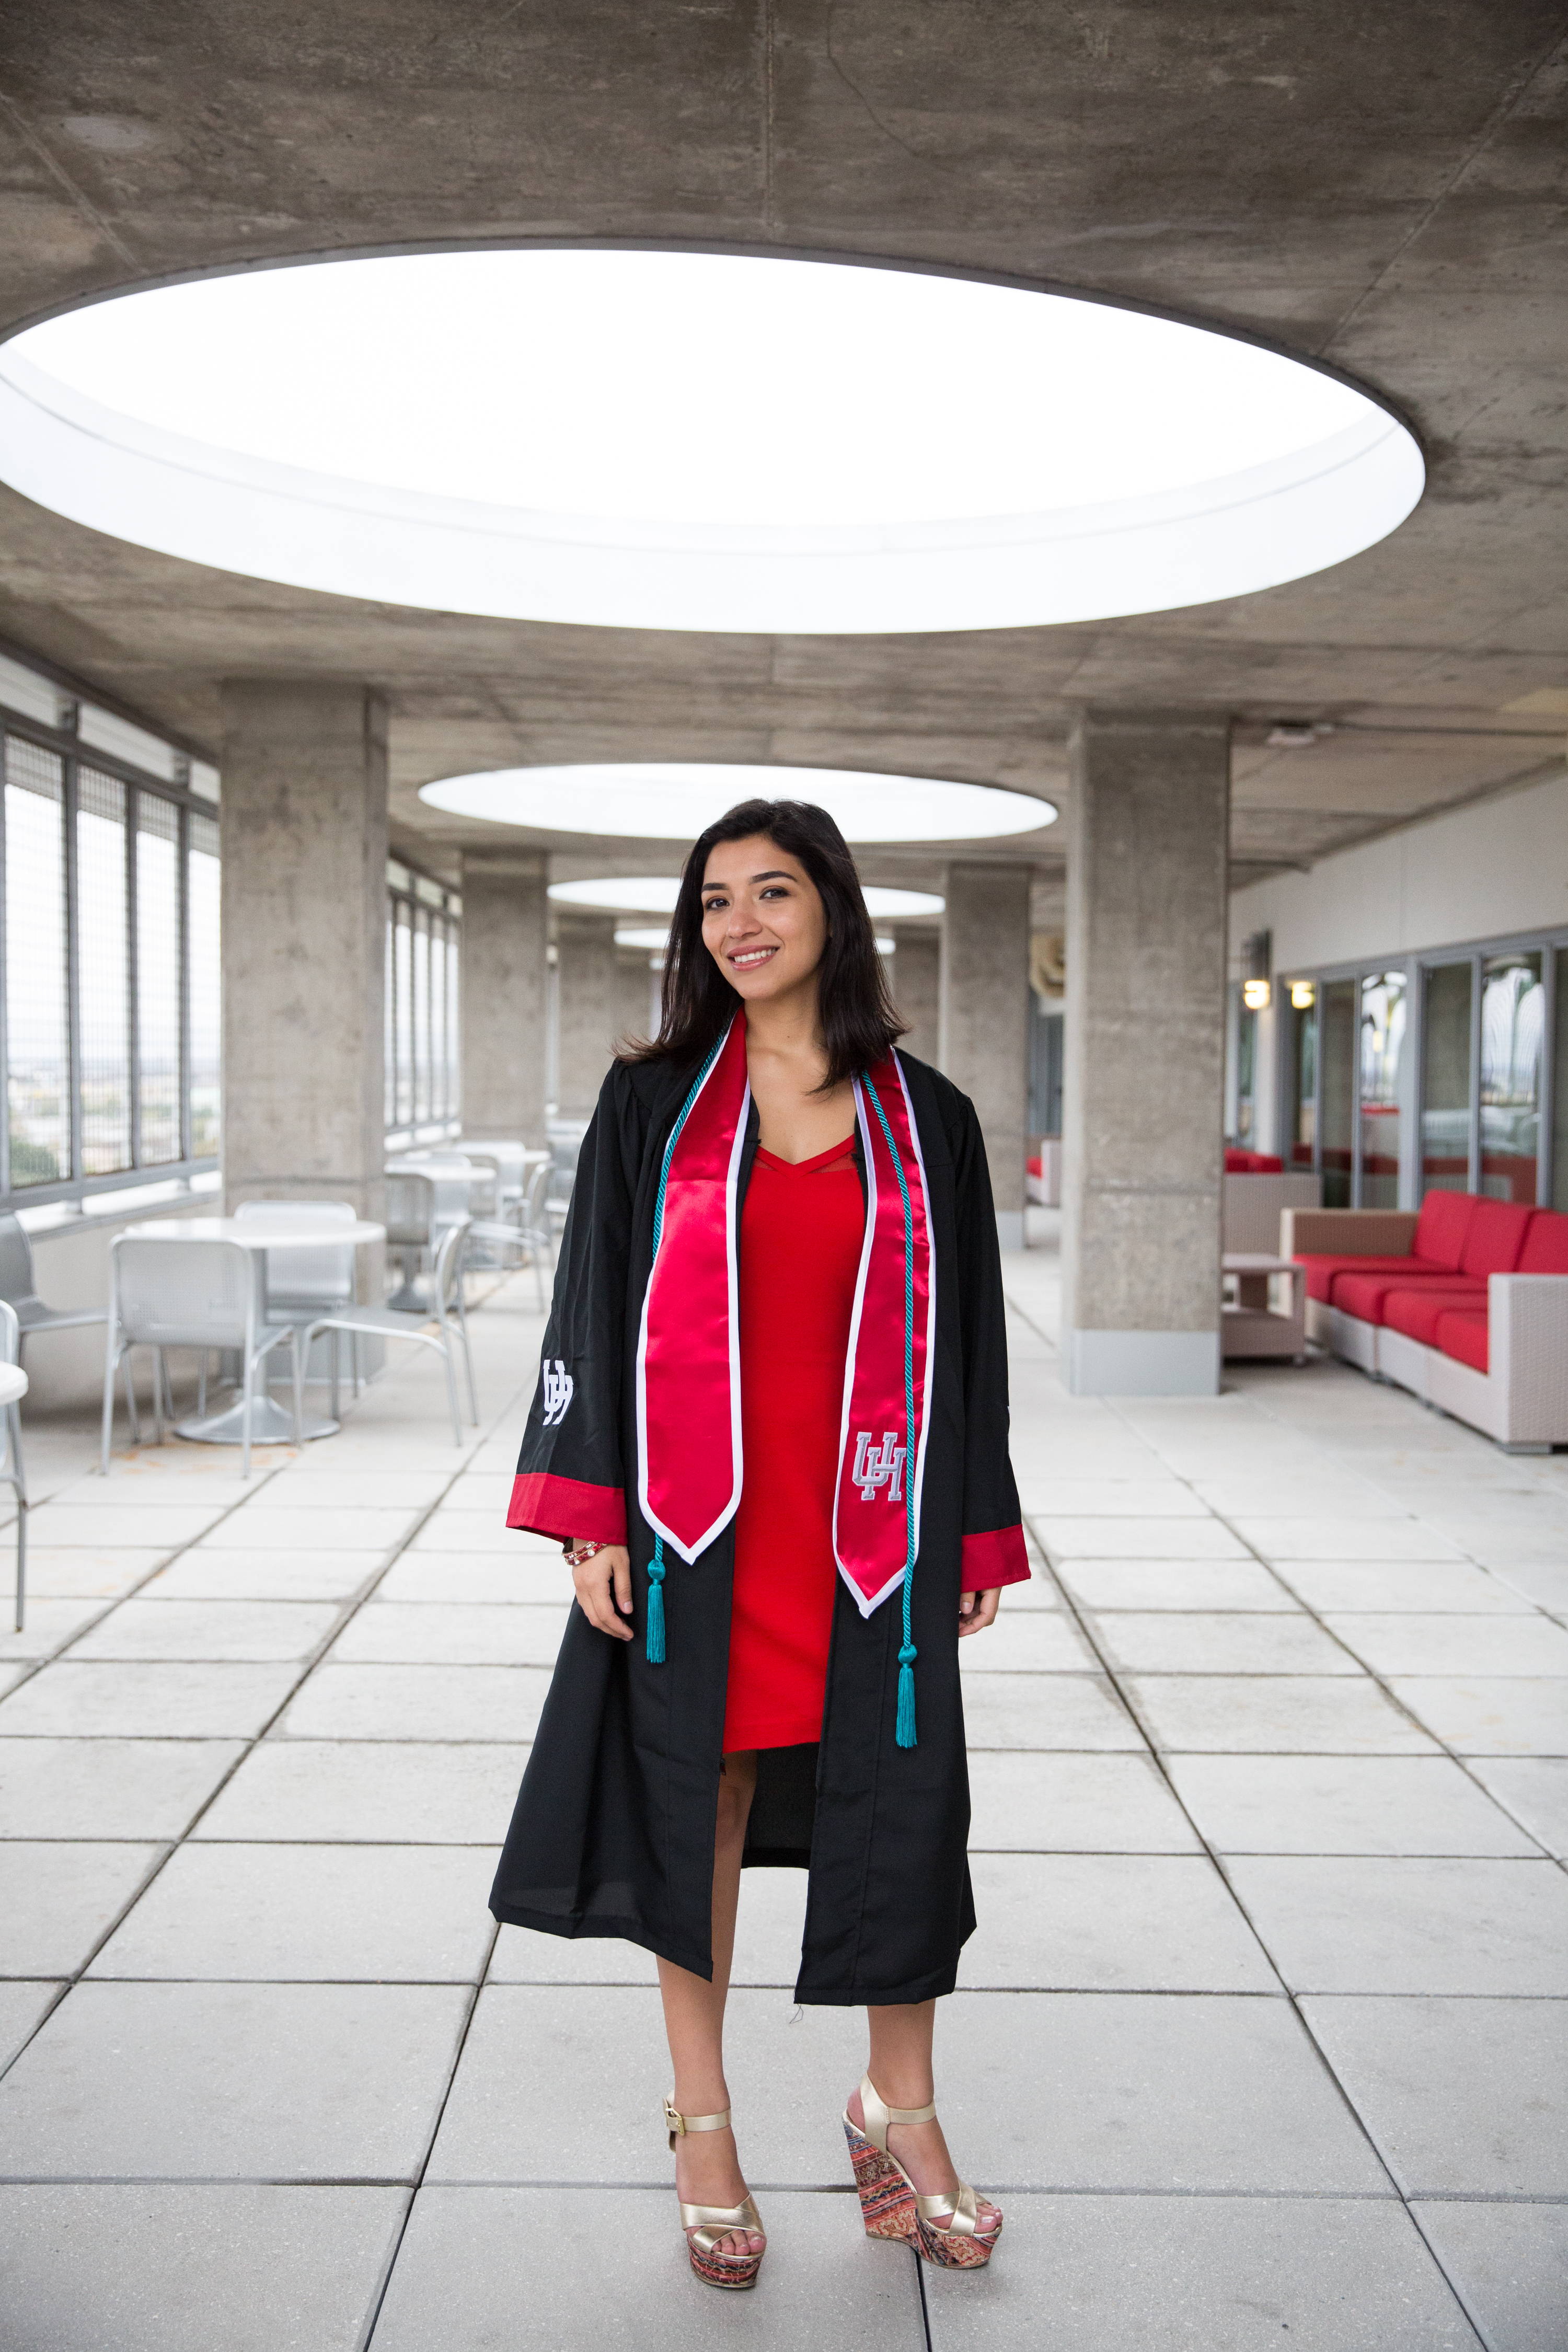 University of Houston Graduate